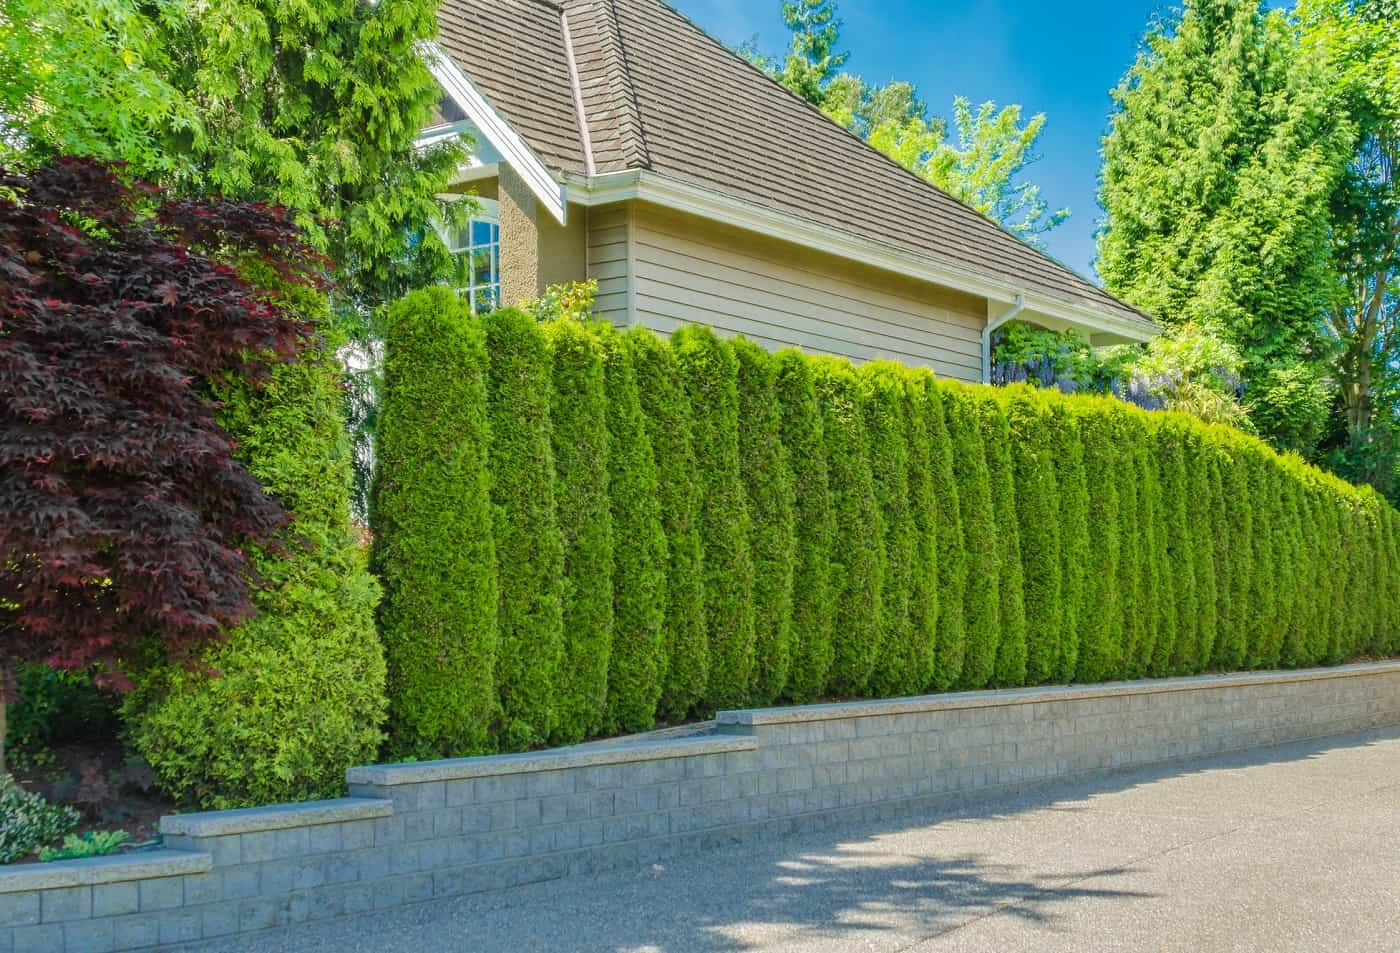 Best Trees for Privacy Screen That Grow Fast